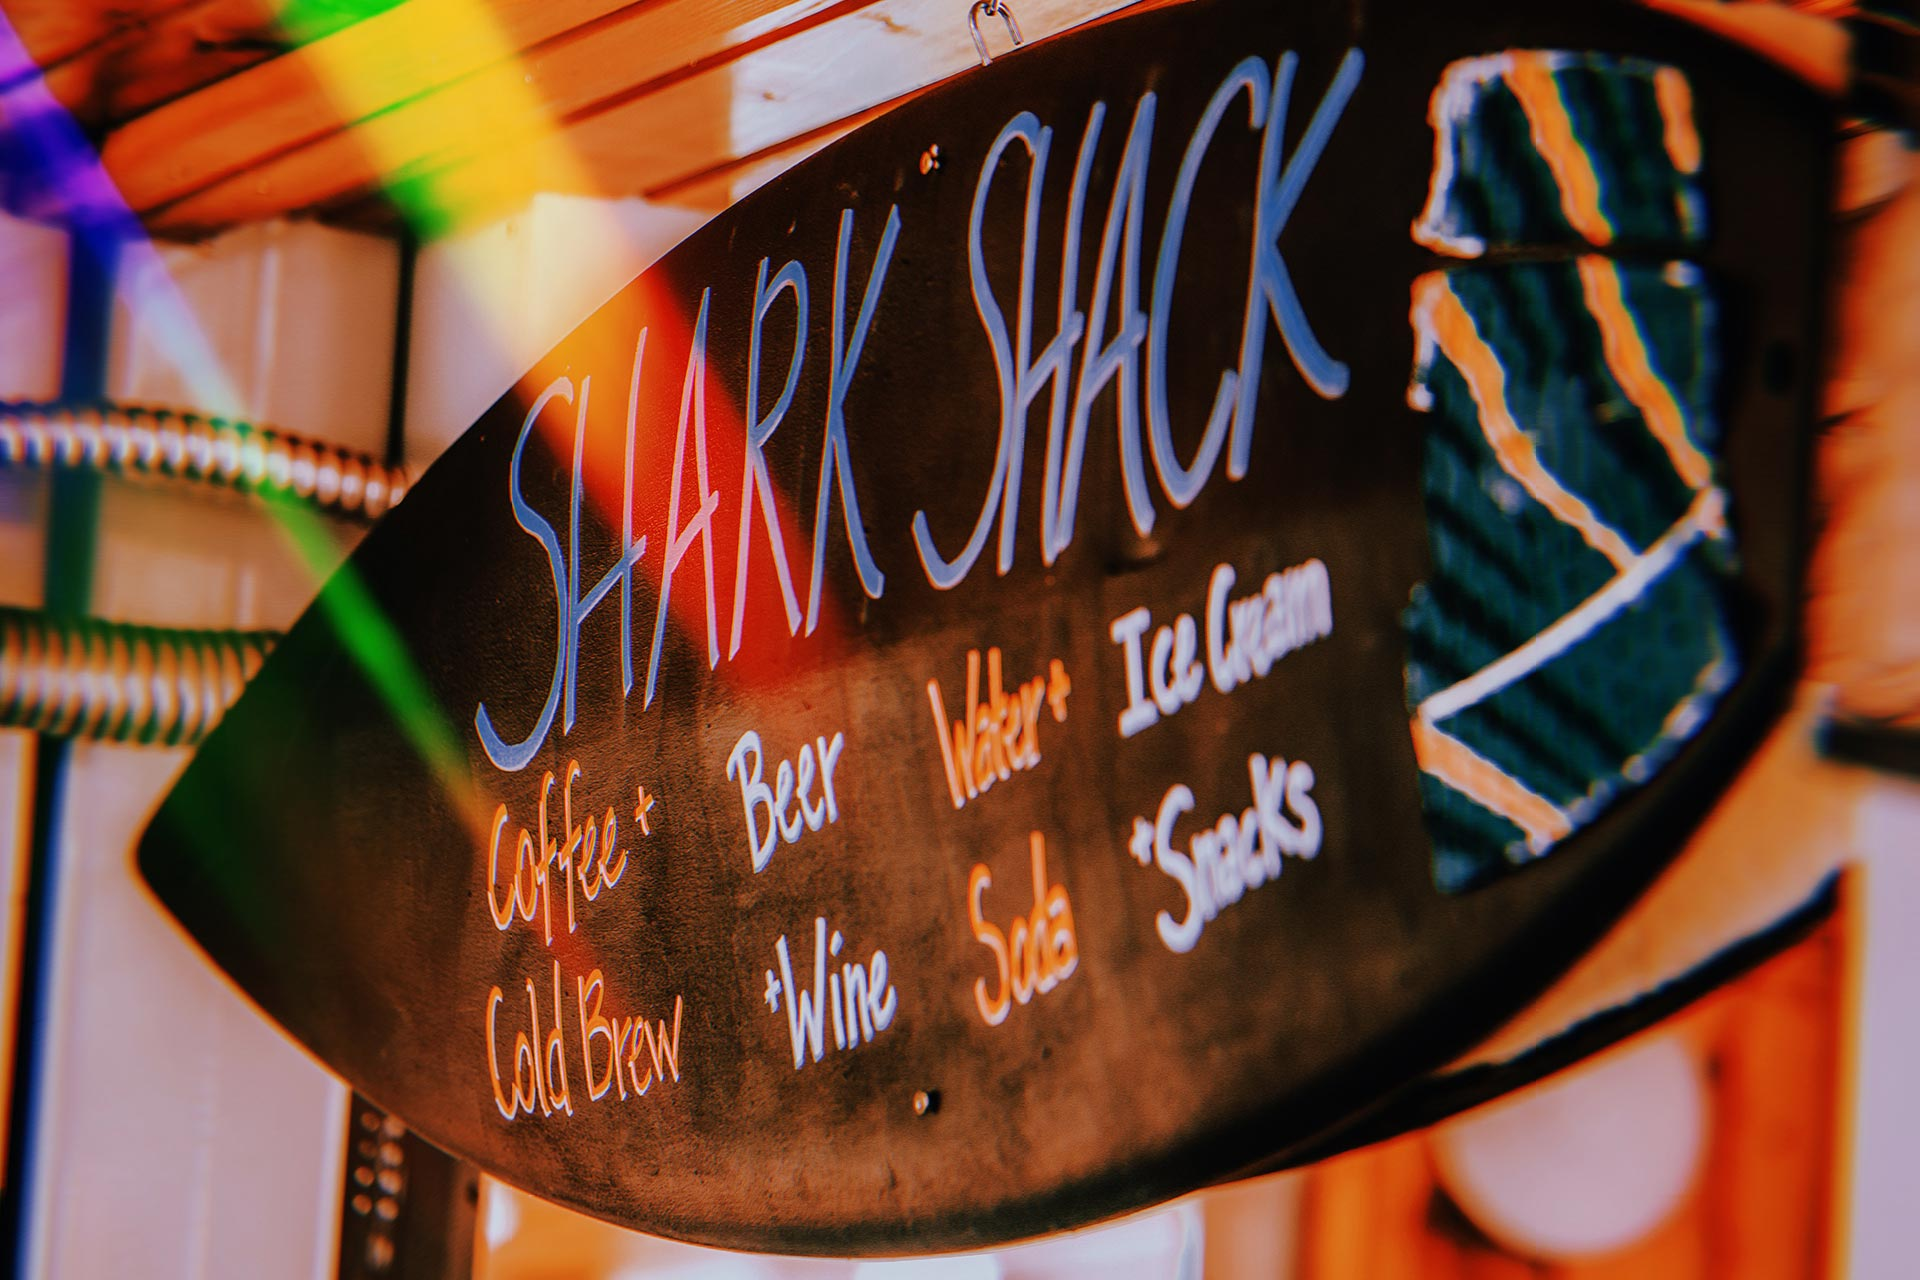 Shark Shack Menu